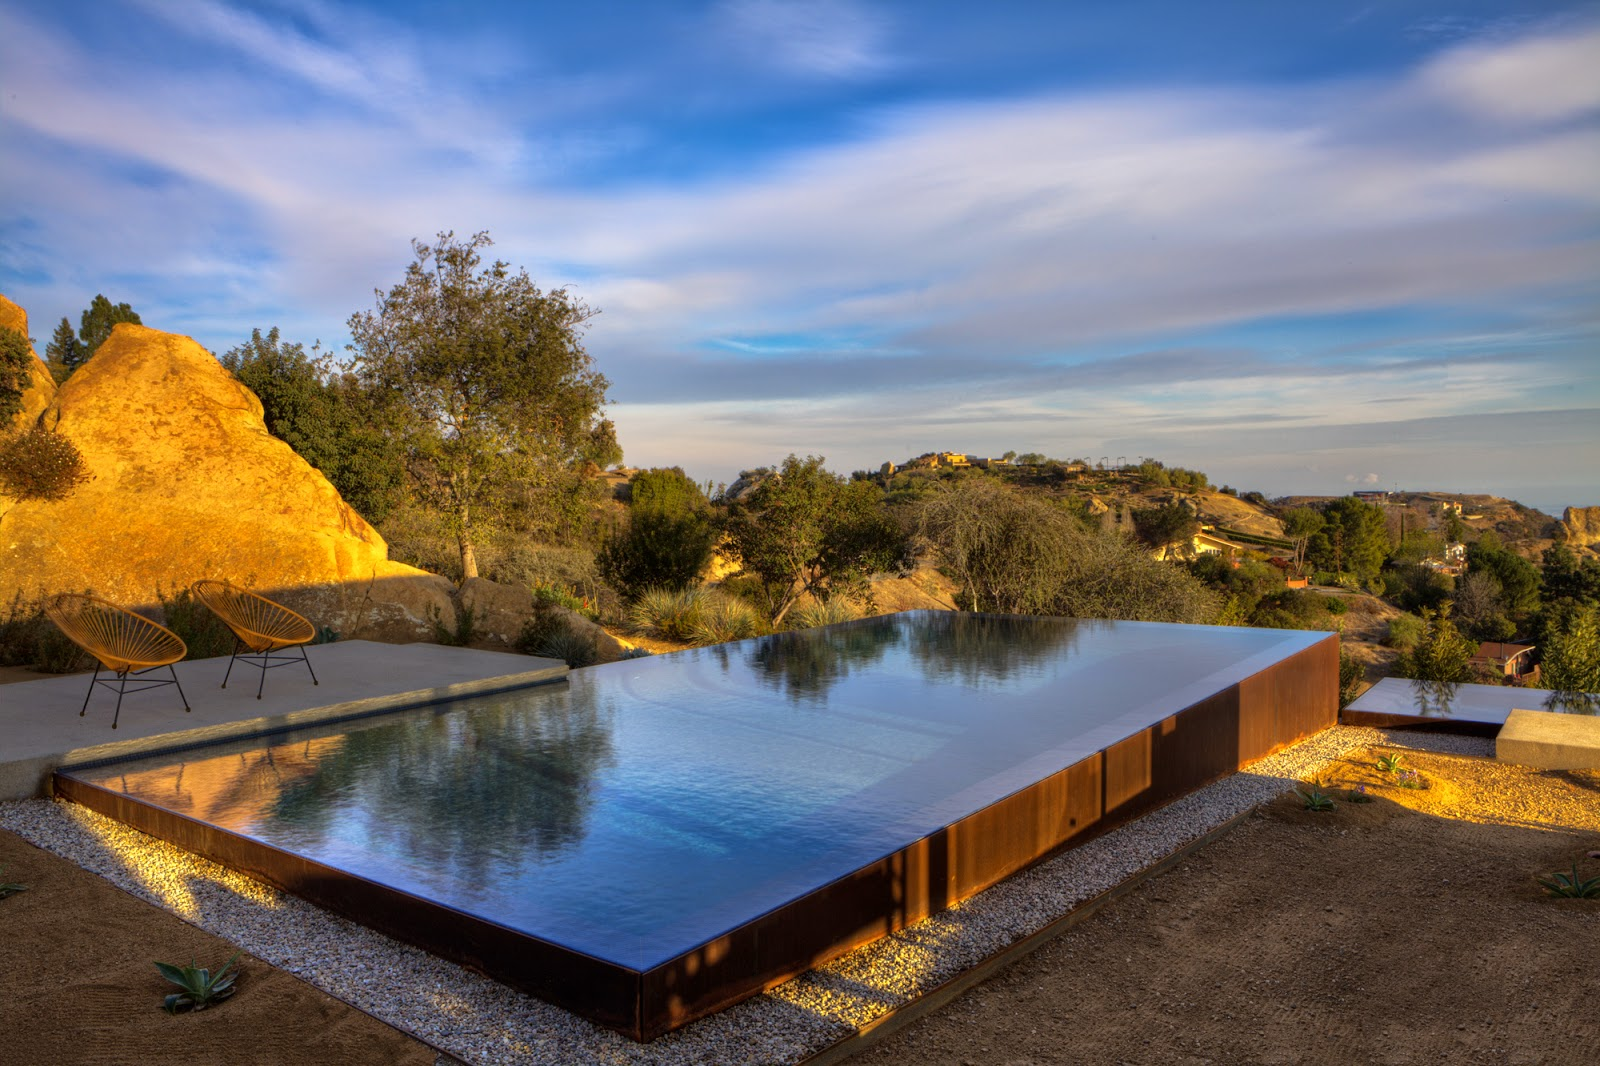 swimming pool structural design example